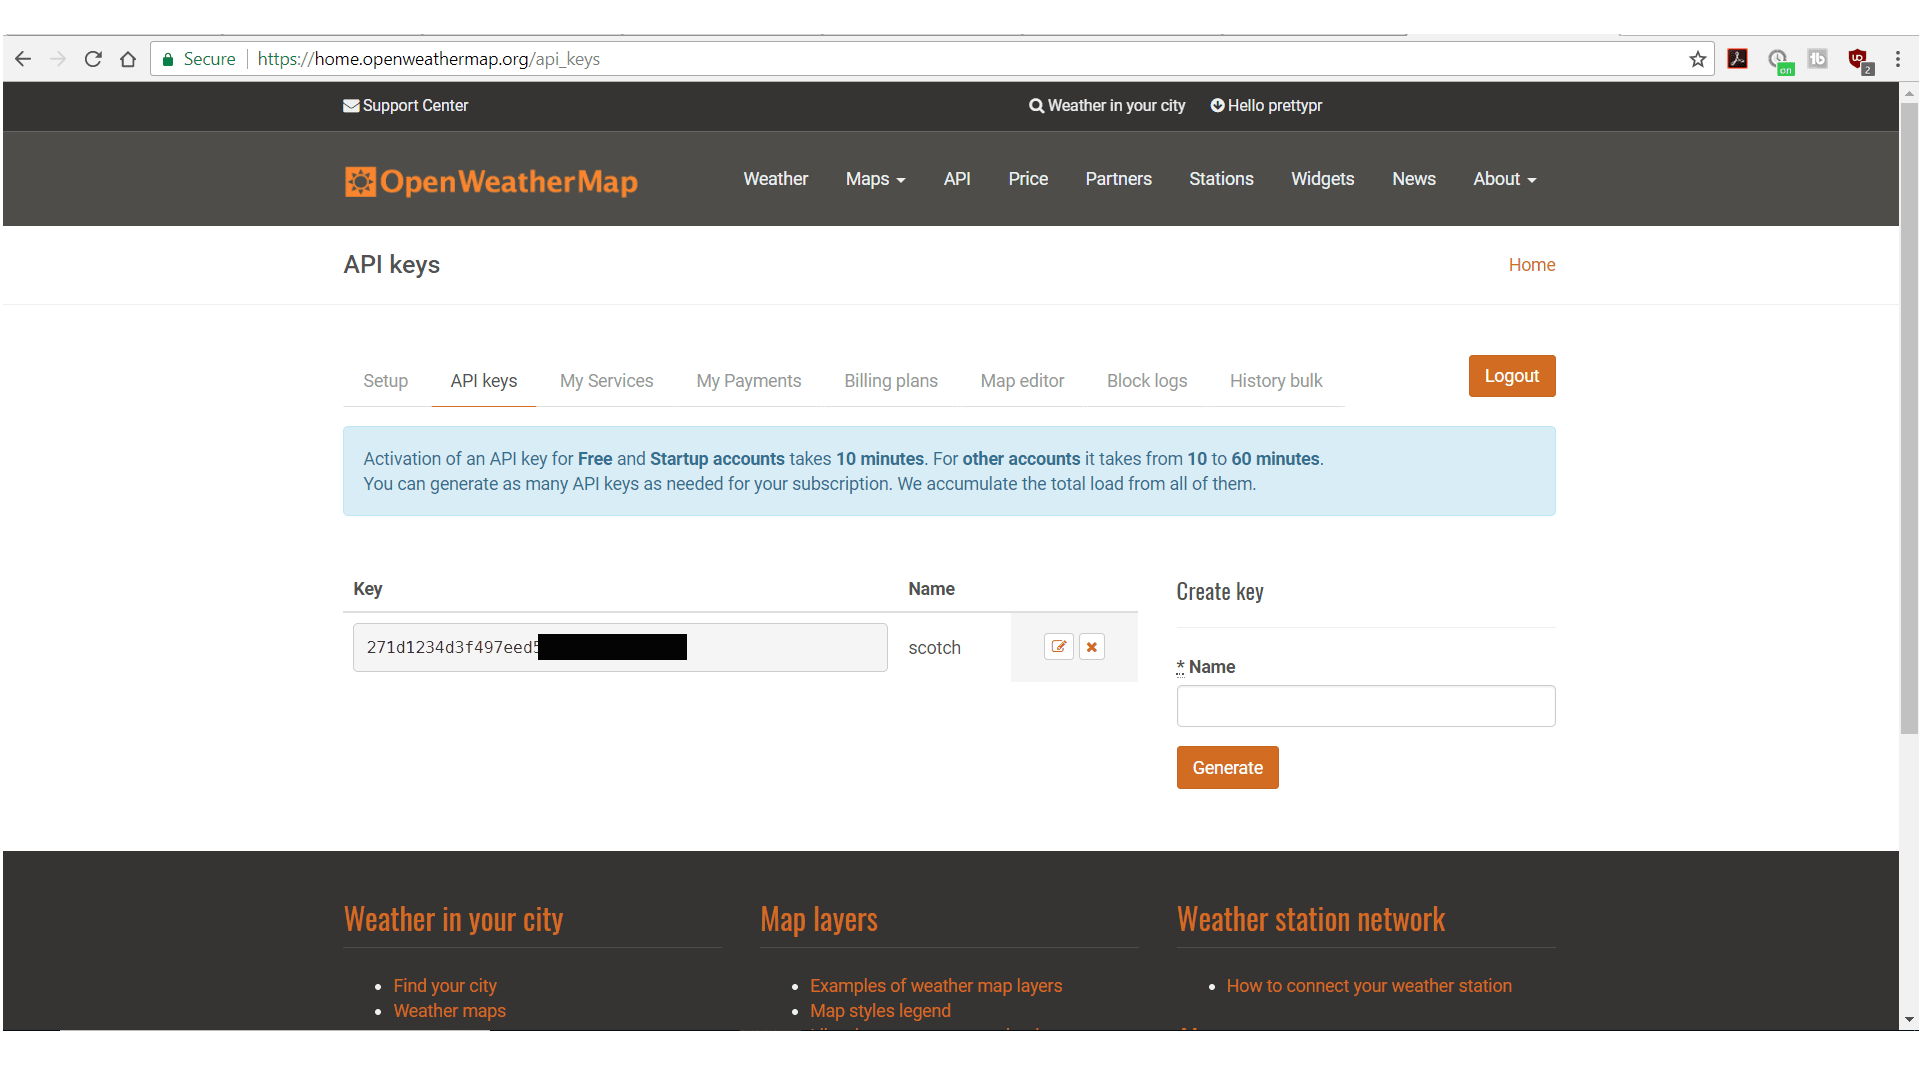 Open Weather Map Dashboard